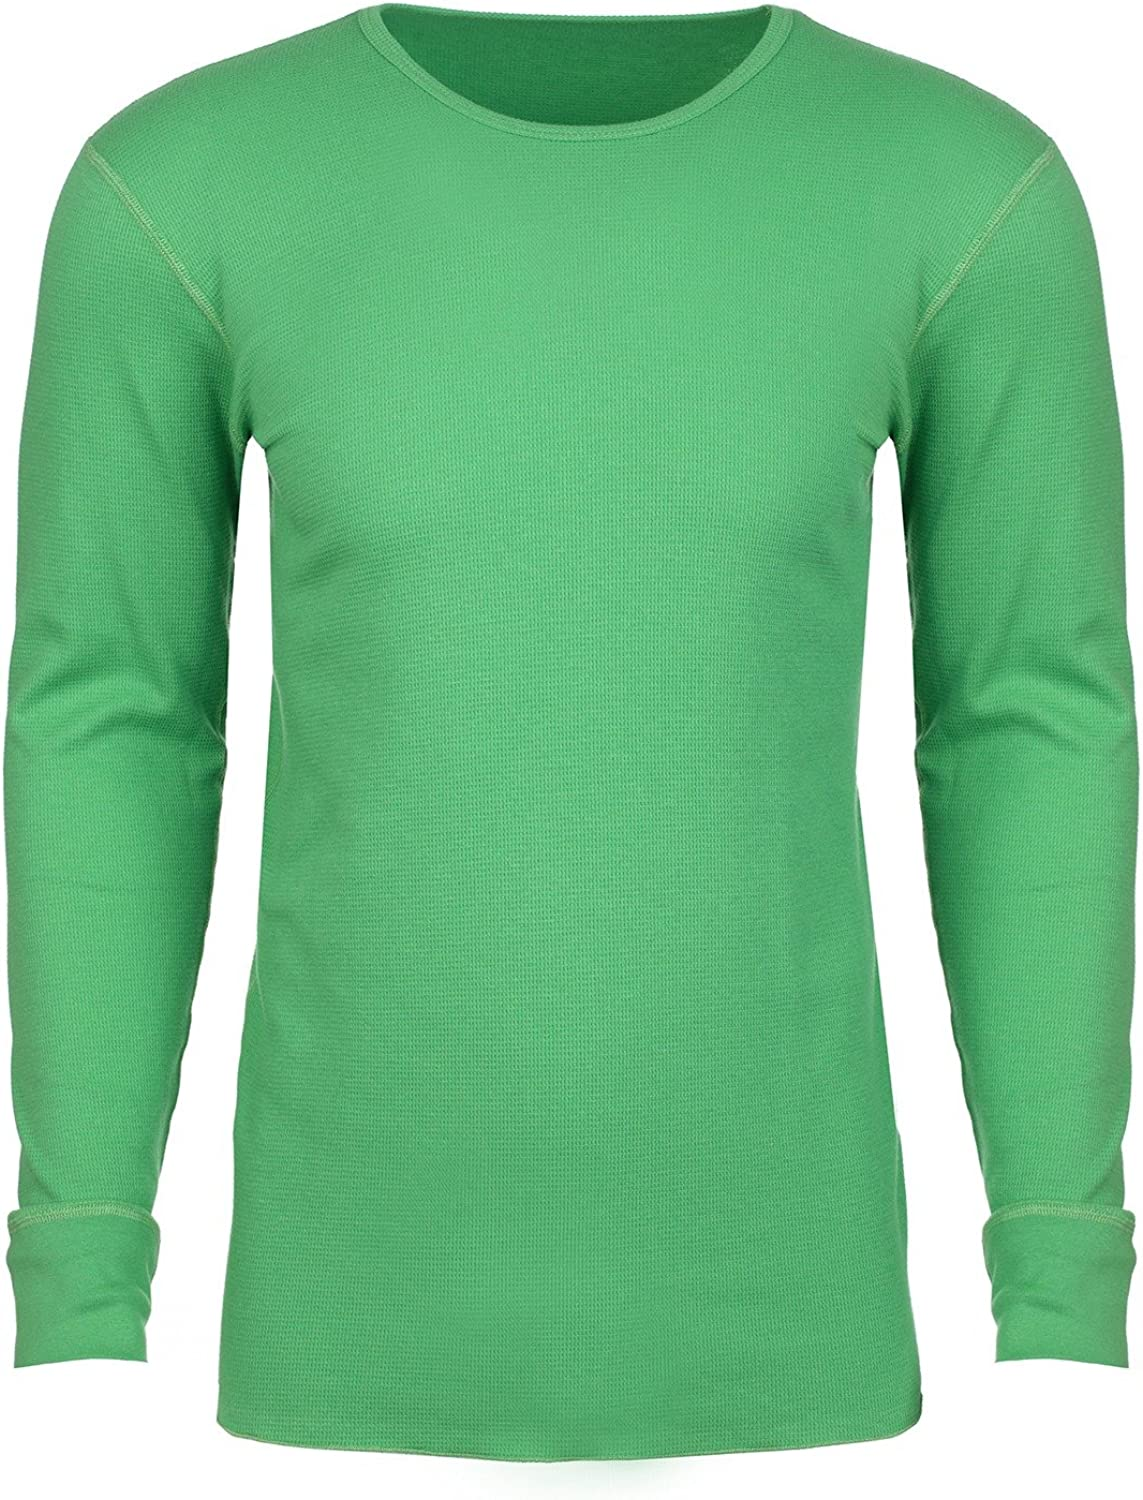 Next Level Adult Long-Sleeve Thermal - ENVY - 2XL - (Style # N8201 - Original Label)